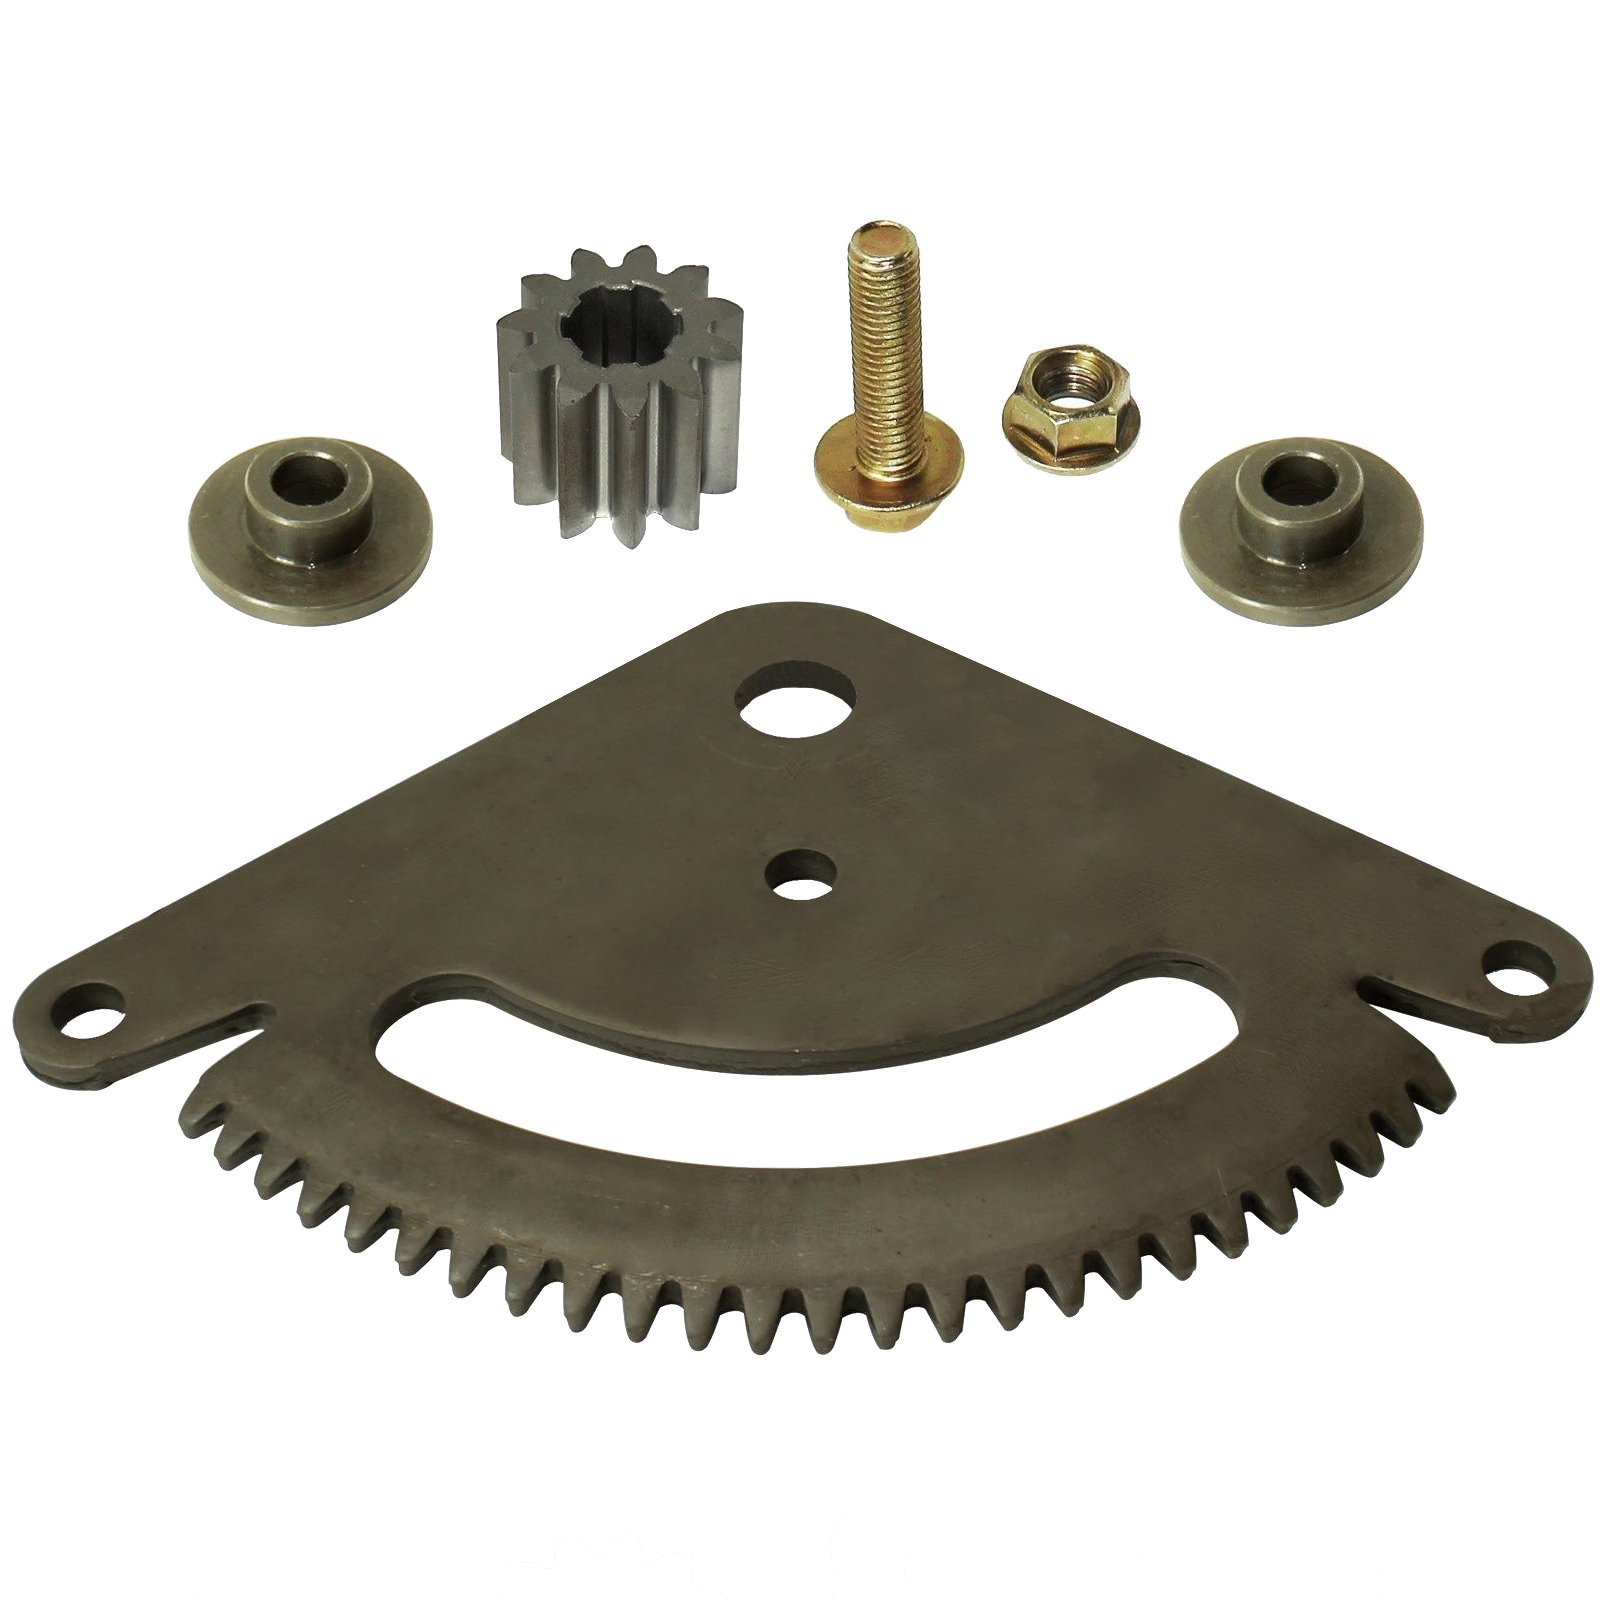 CALTRIC SELECTIVE SECTOR PLATE and PINION GEAR For JOHN DEERE GX20052 GX20052BLE GX20054